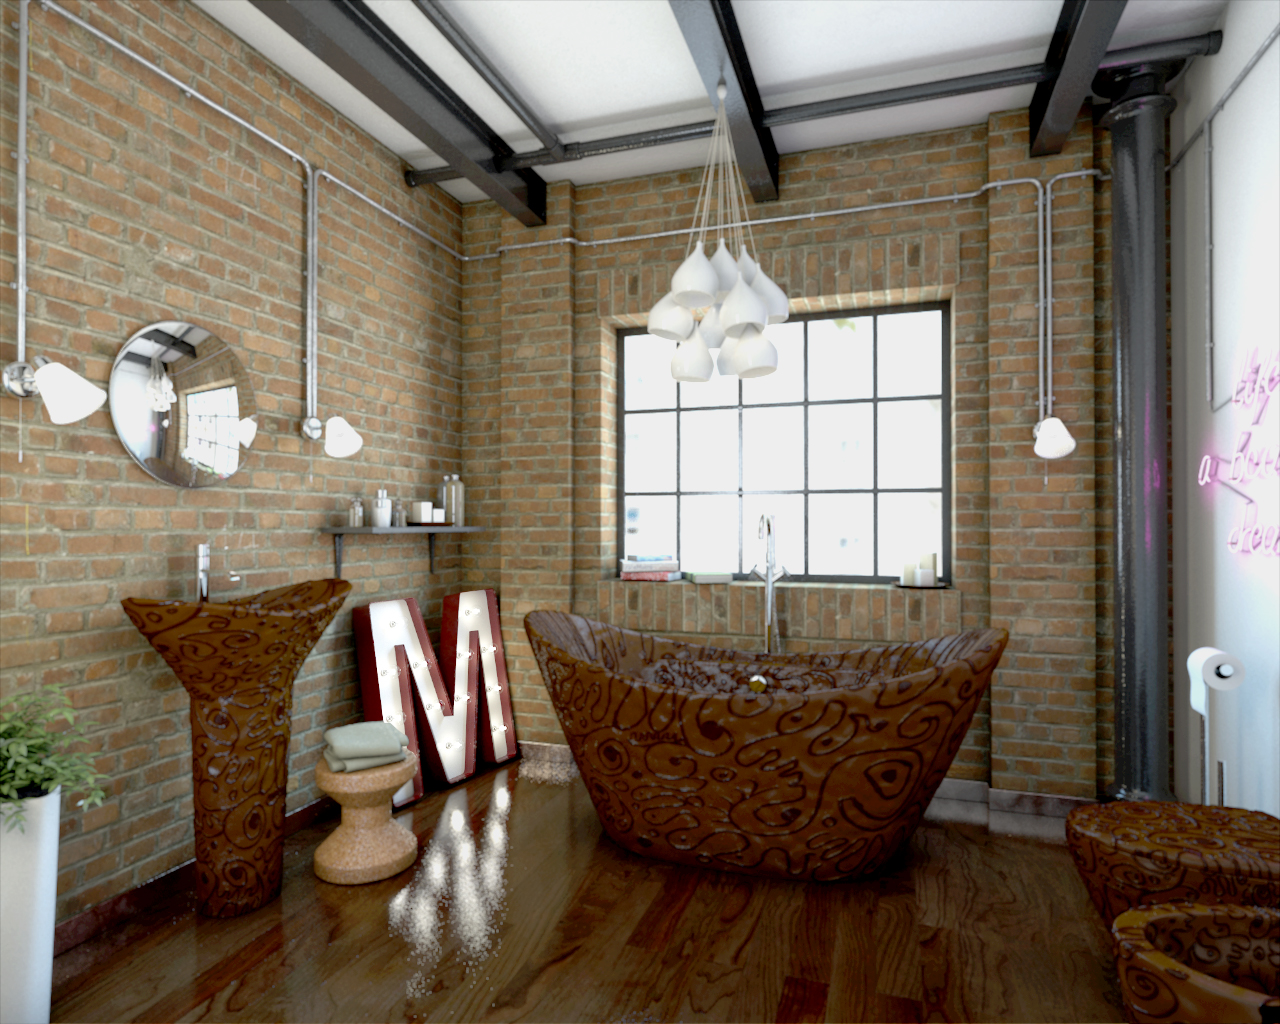 Sweet Bathroom Design